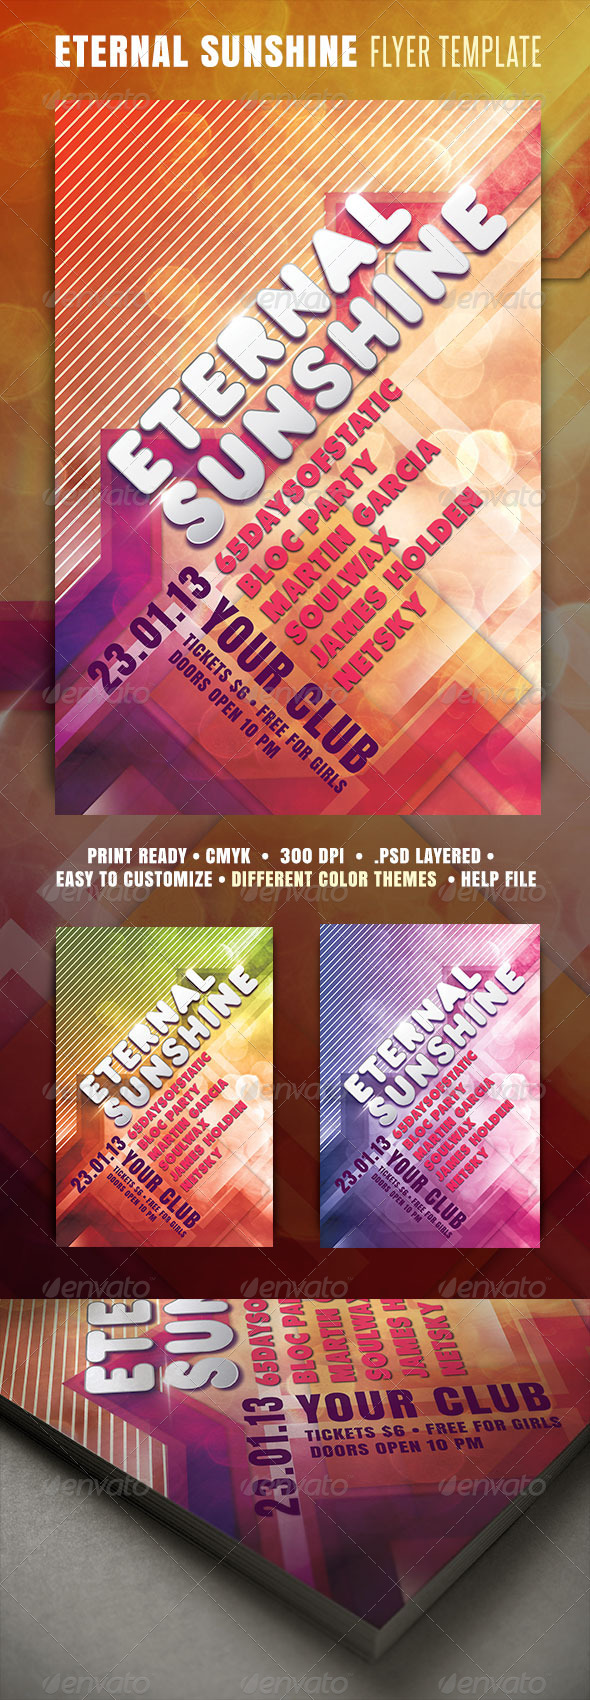 GraphicRiver Eternal Sunshine Flyer 3942846